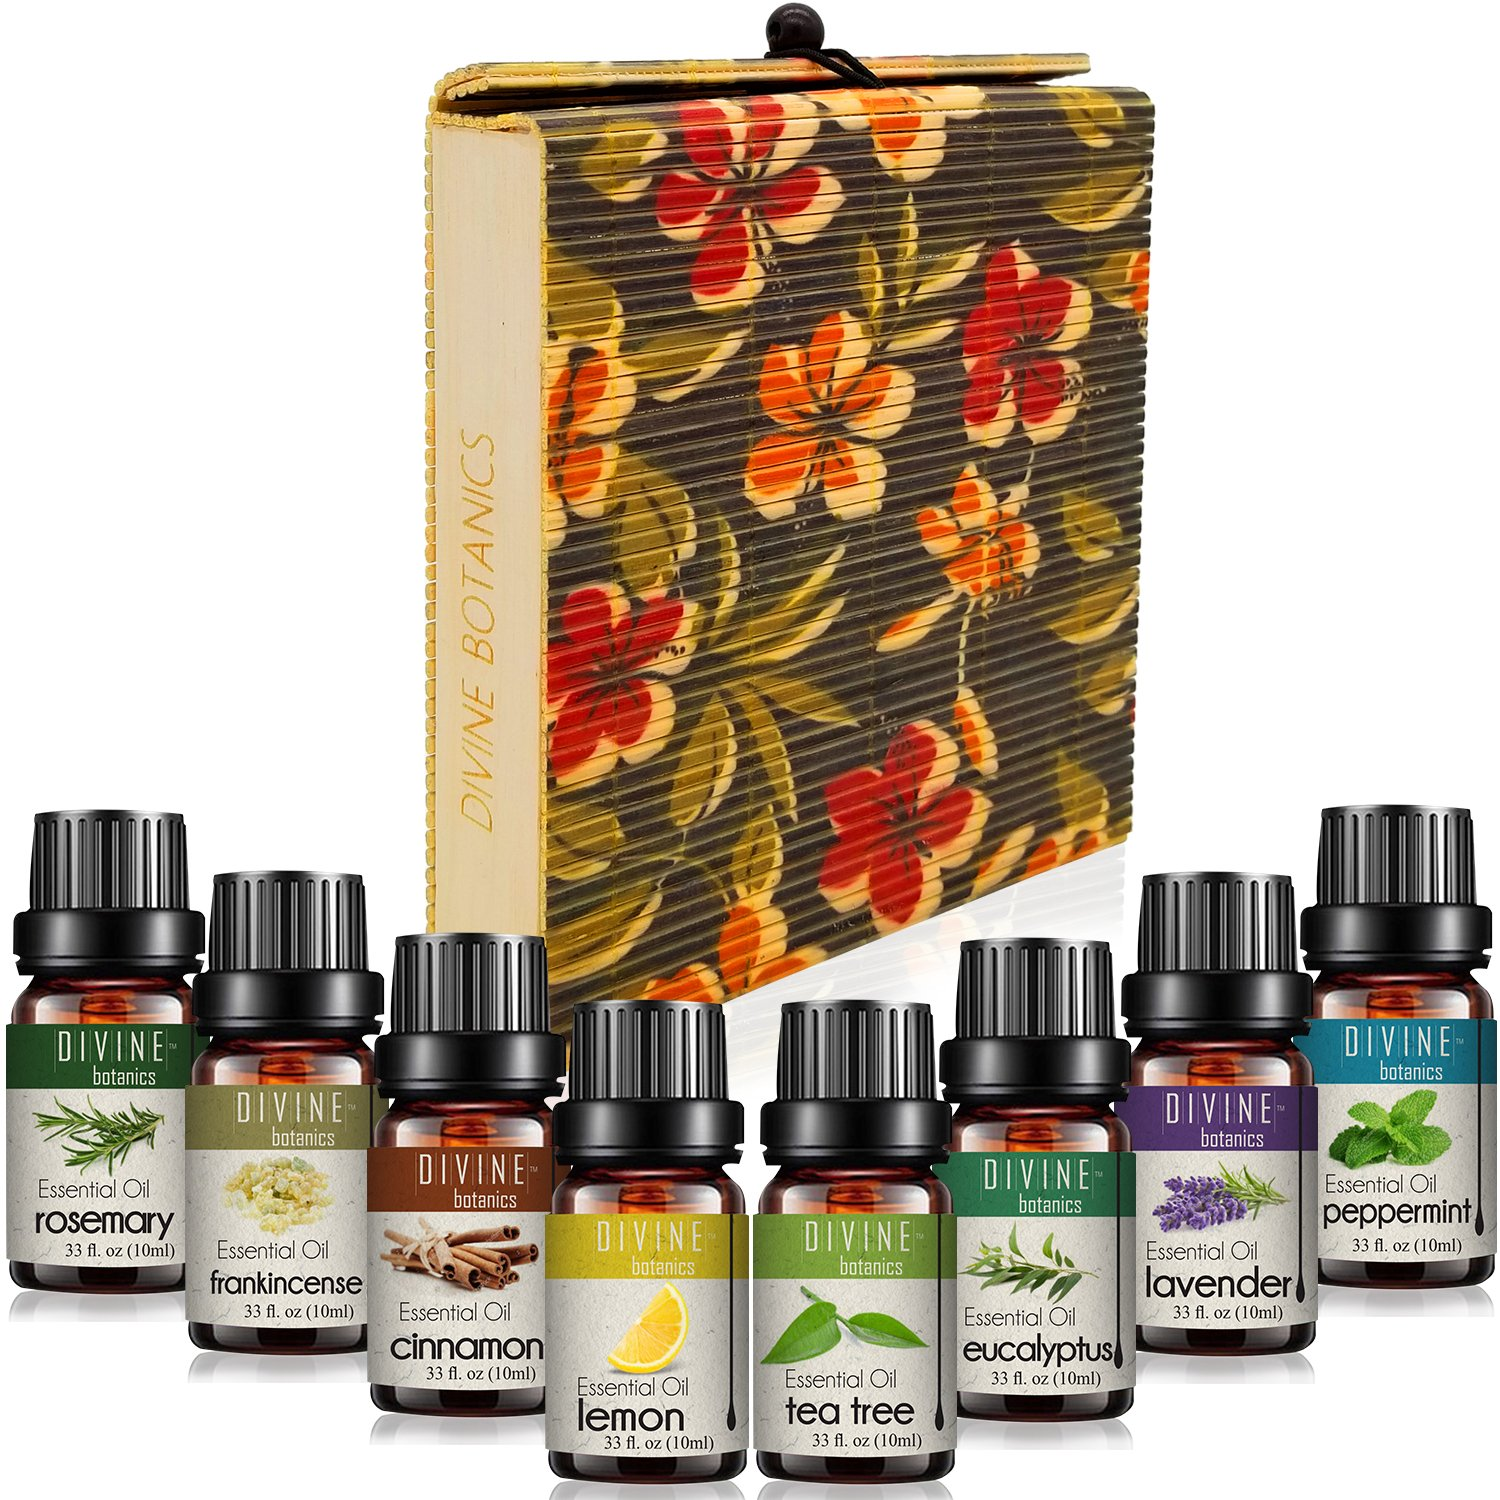 Aromatherapy Essential Oils Perfect Gifts for Women for Diffuser - Pure Therapeutic Grade - Handmade Box 8 10ml Bottles - Lavender Peppermint Lemon Tea Tree Frankincense Cinnamon Eucalyptus Rosemary